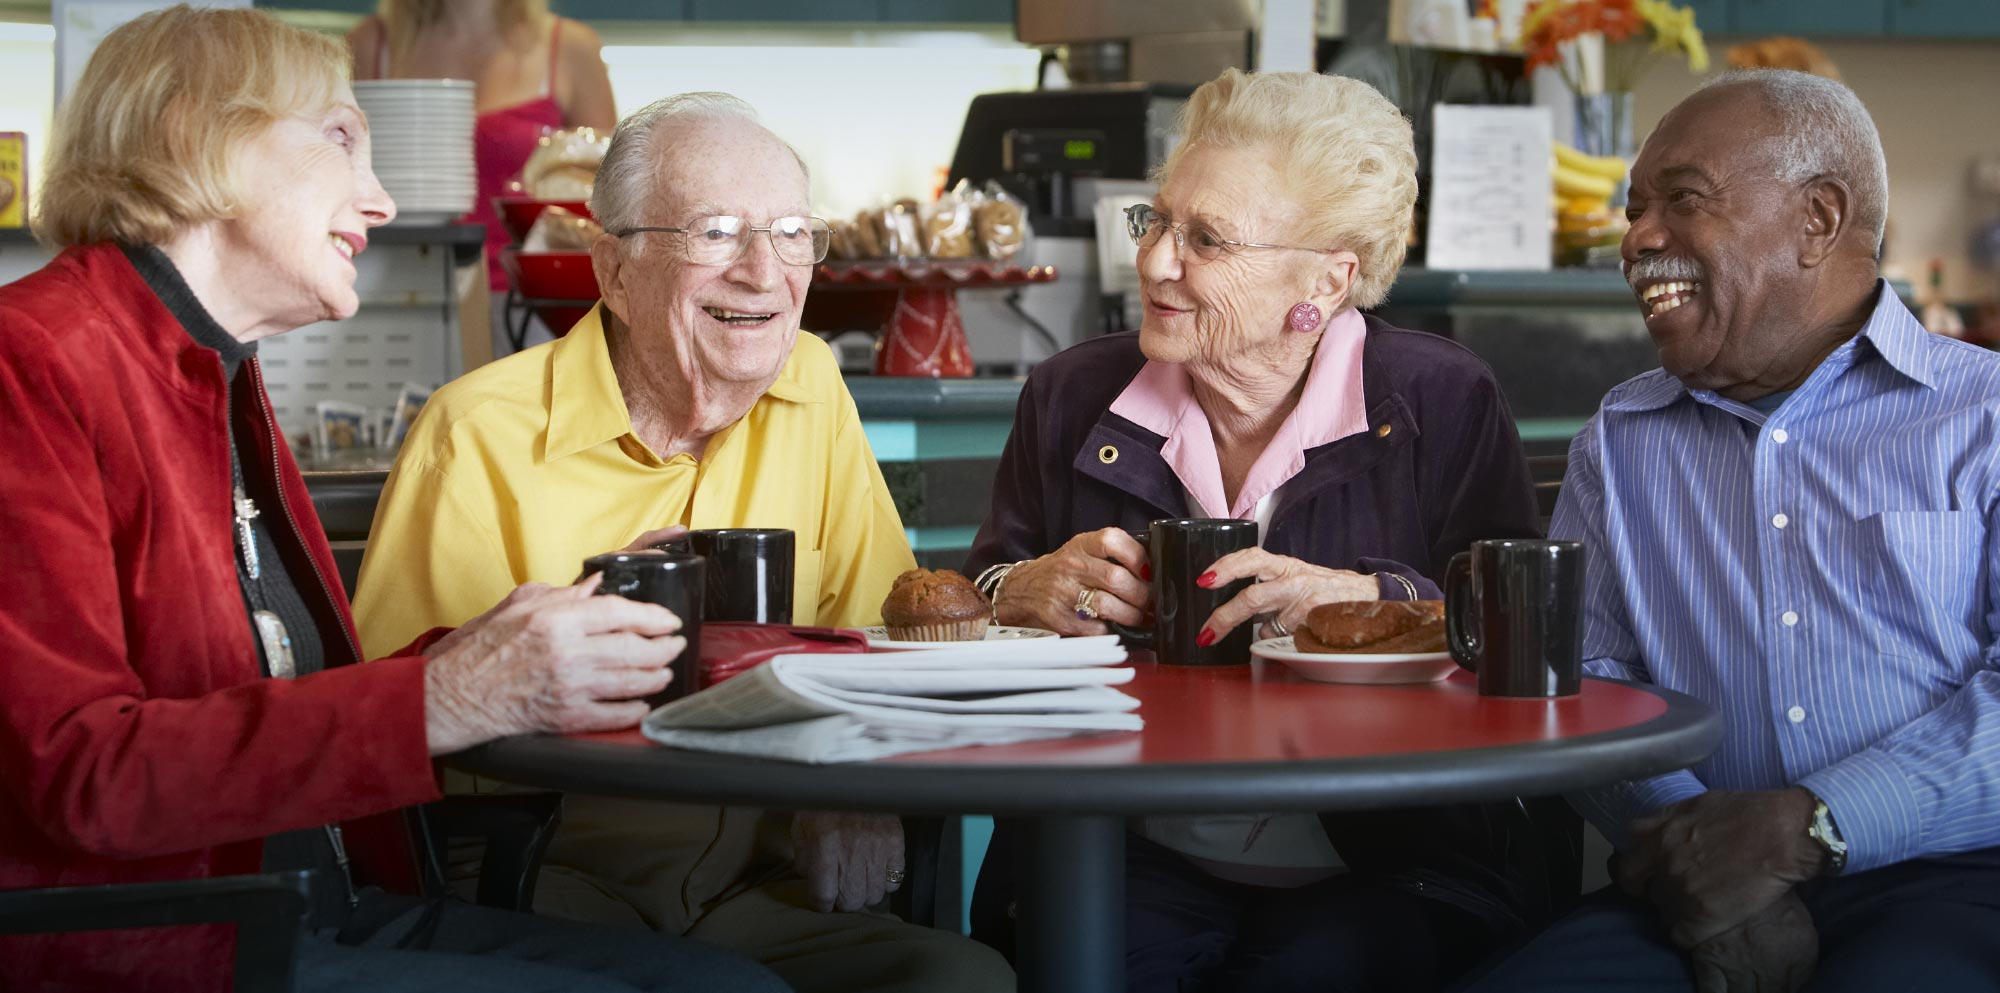 Seniors having coffee out on the town